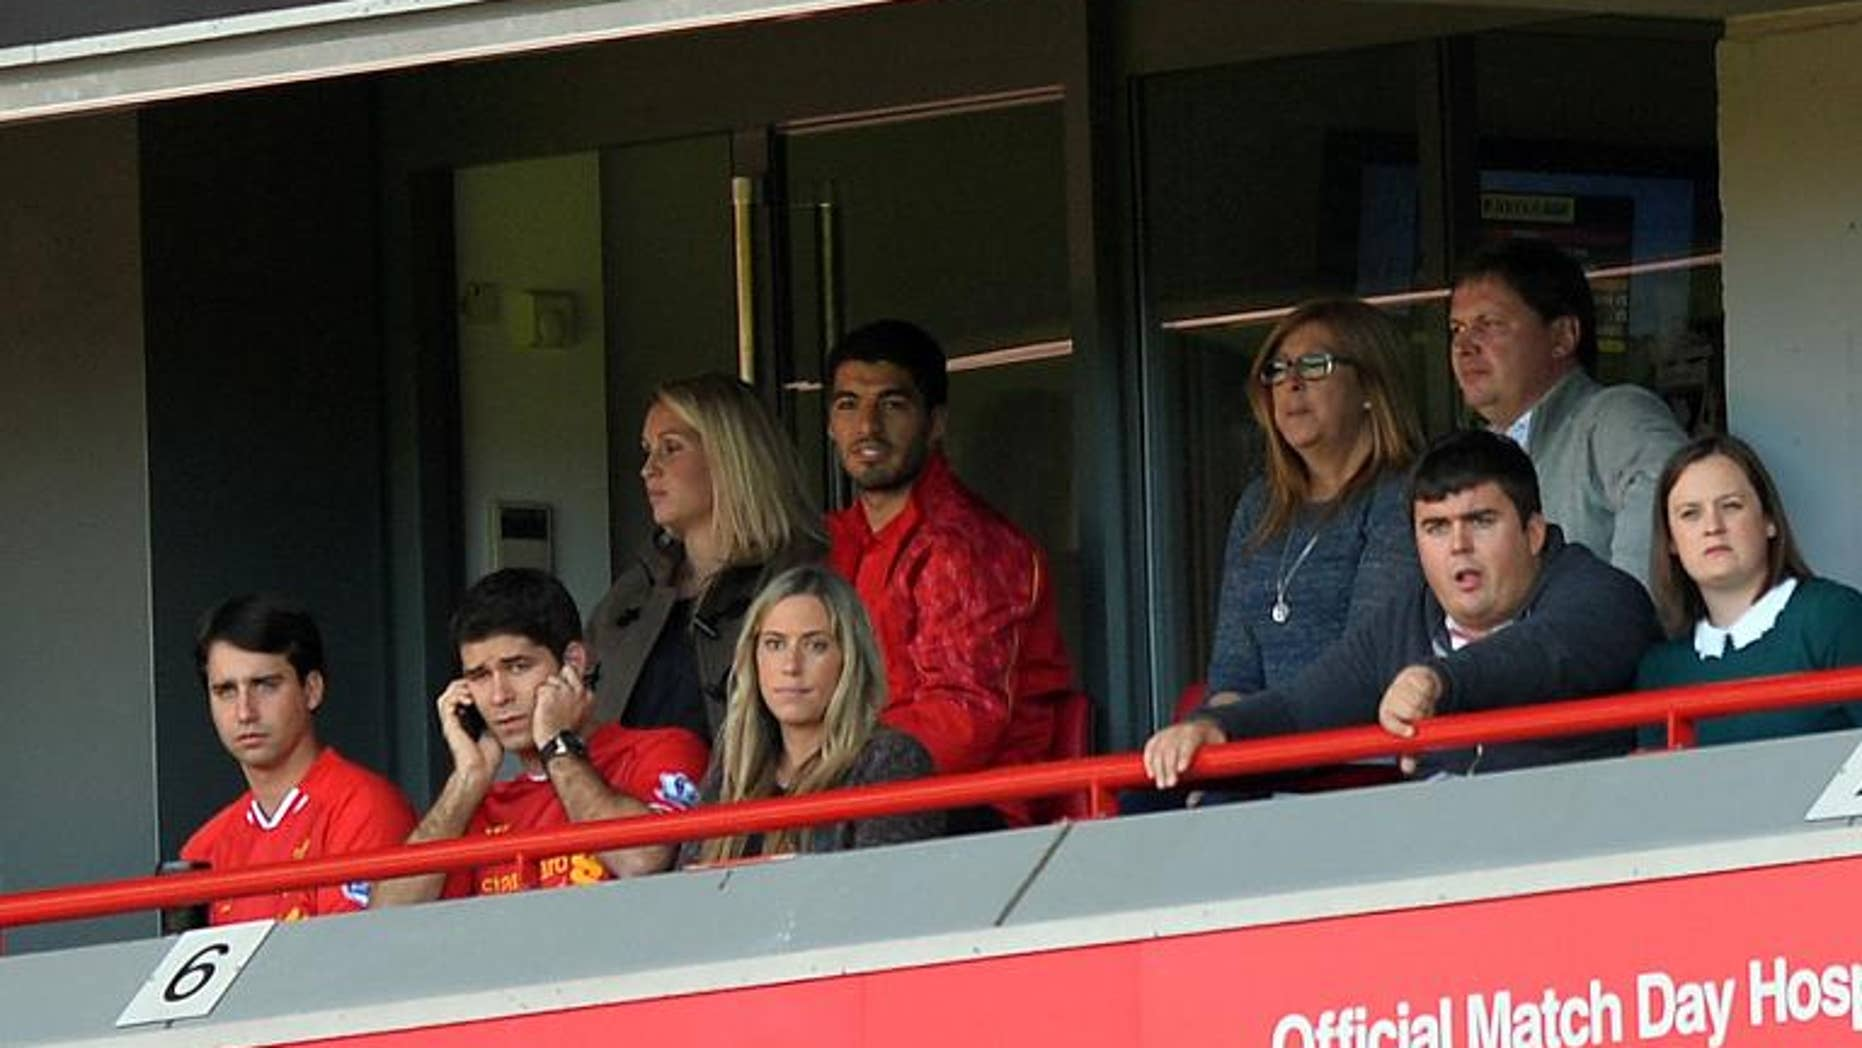 Liverpool's Luis Suarez watches from a hospitality box at Anfield stadium in Liverpool, on September 21, 2013.